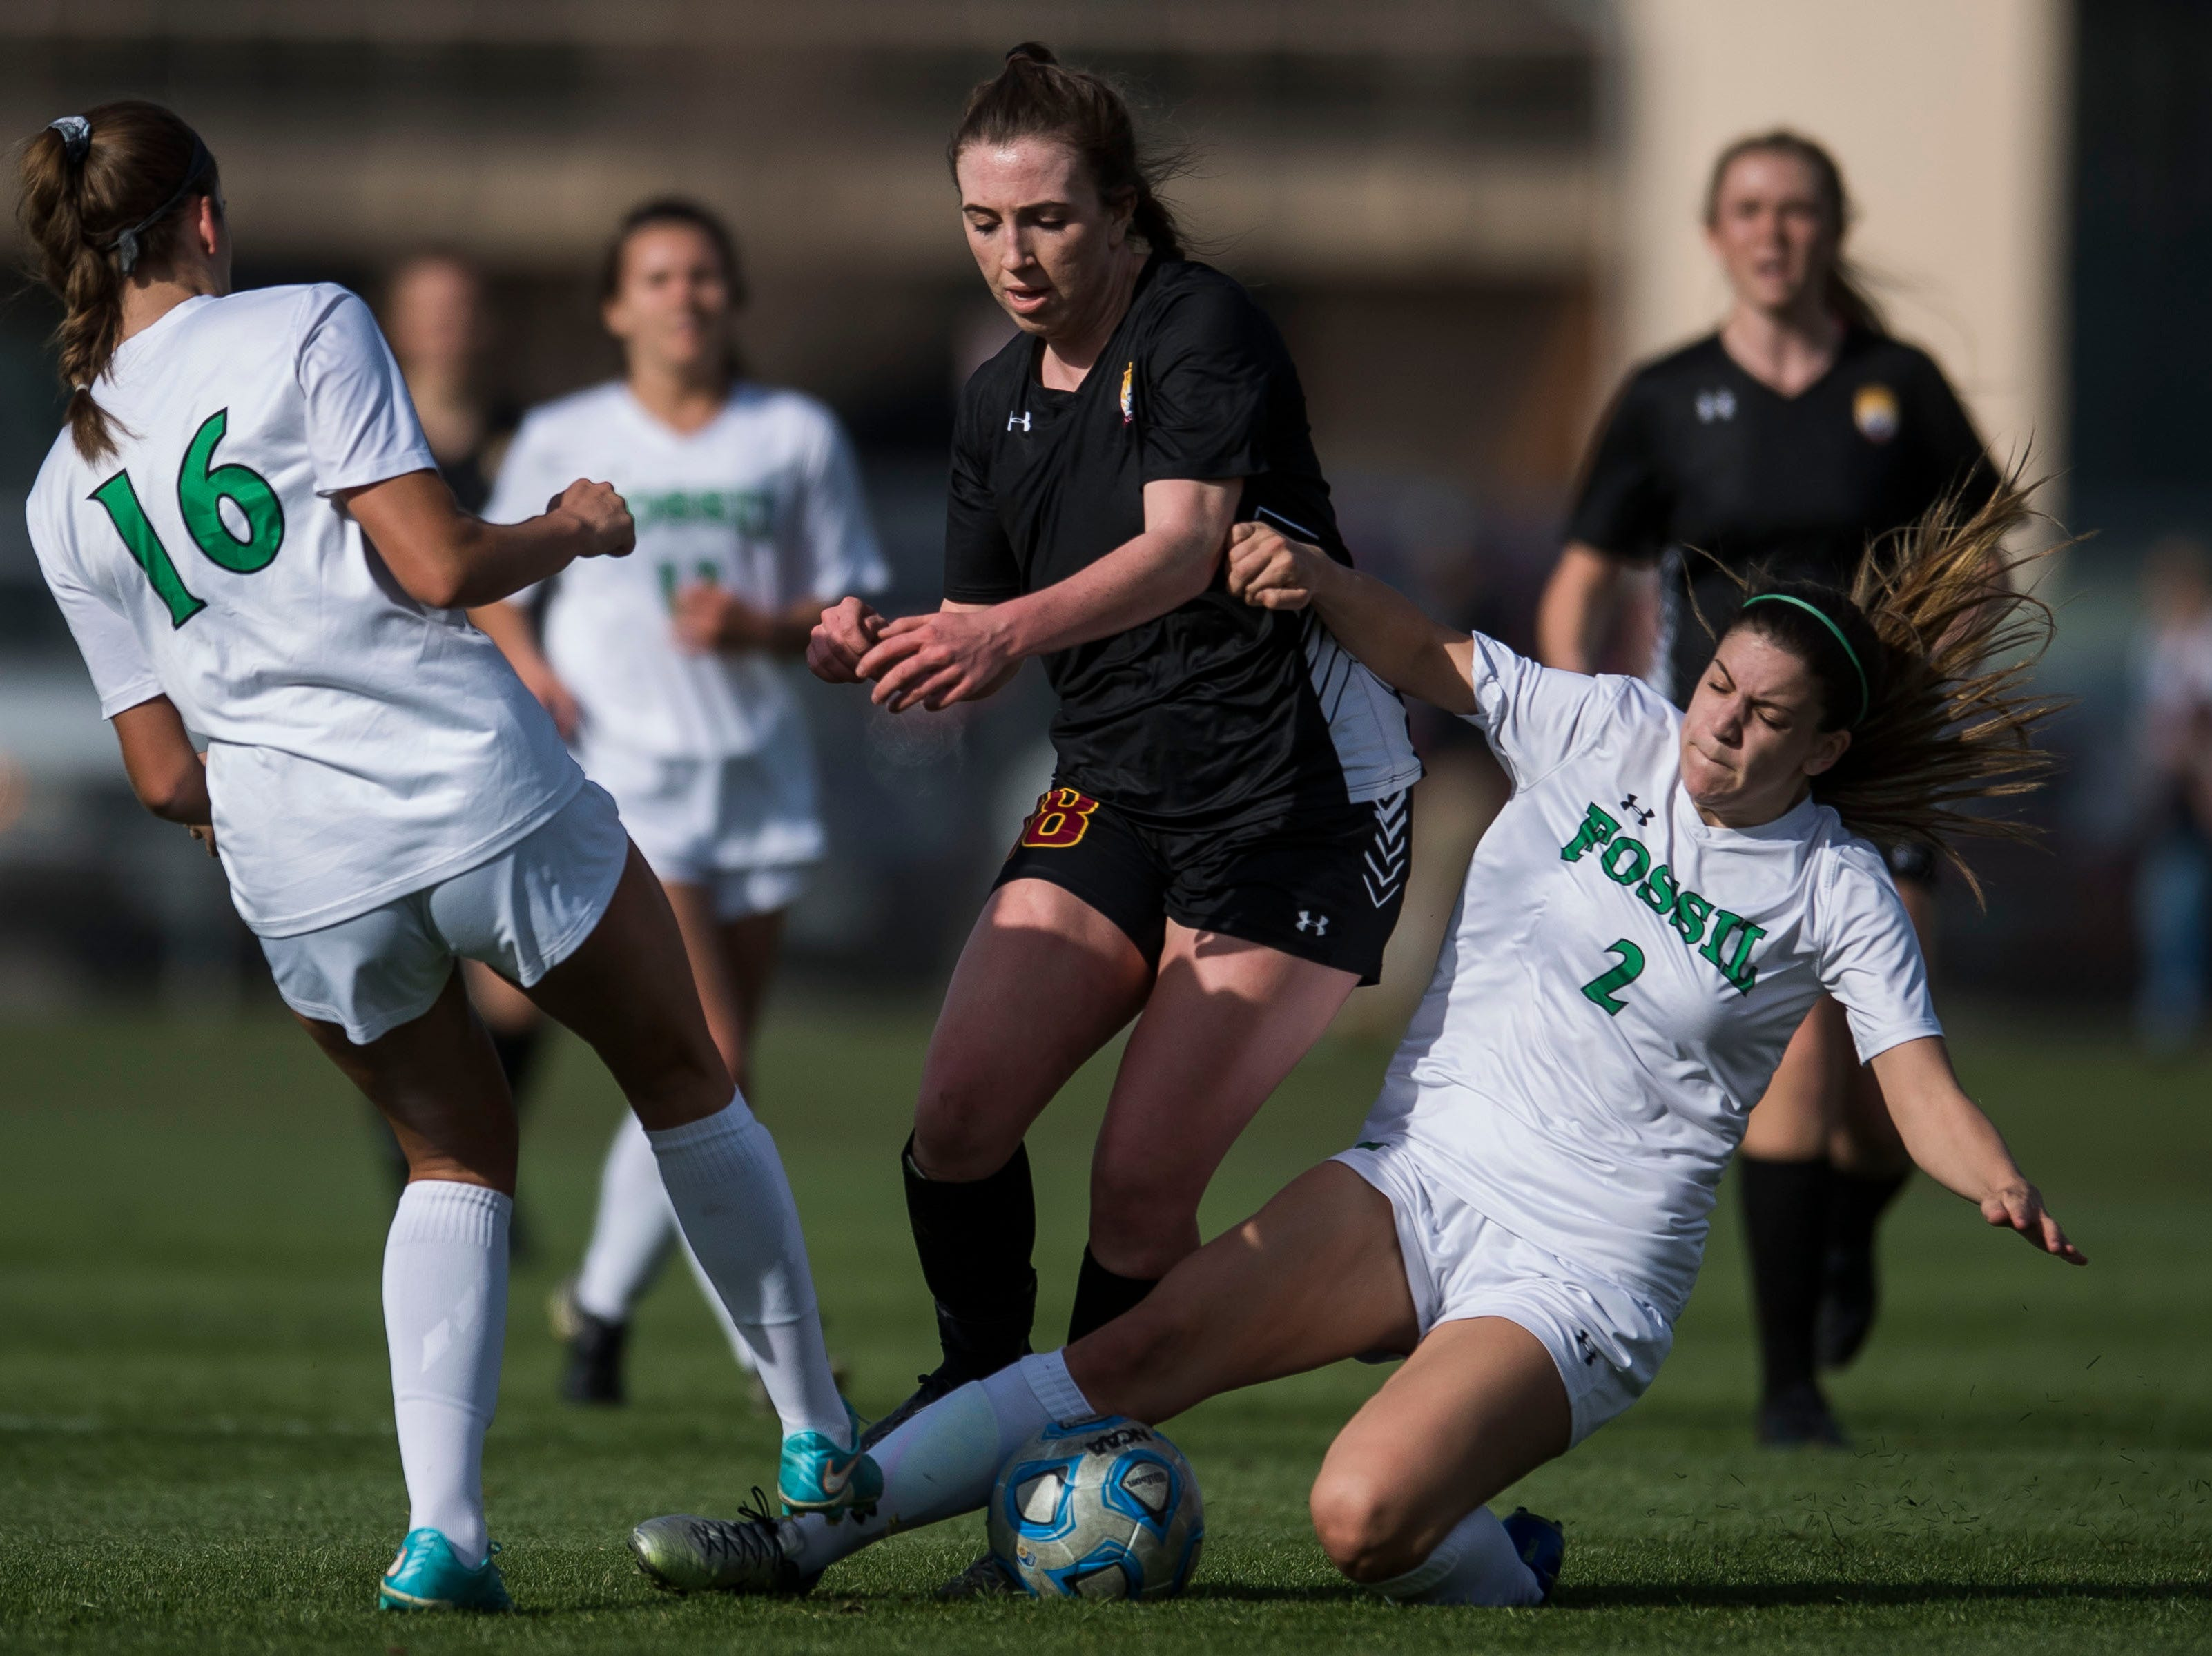 Rocky Mountain High School senior Mikayla Eccher (18) gets tangles up with Fossil Ridge High School senior Alex Lockwood (2) and senior Lauren Martis (16) on Friday, April 4, 2019, at Colorado State University's soccer field in Fort Collins, Colo.